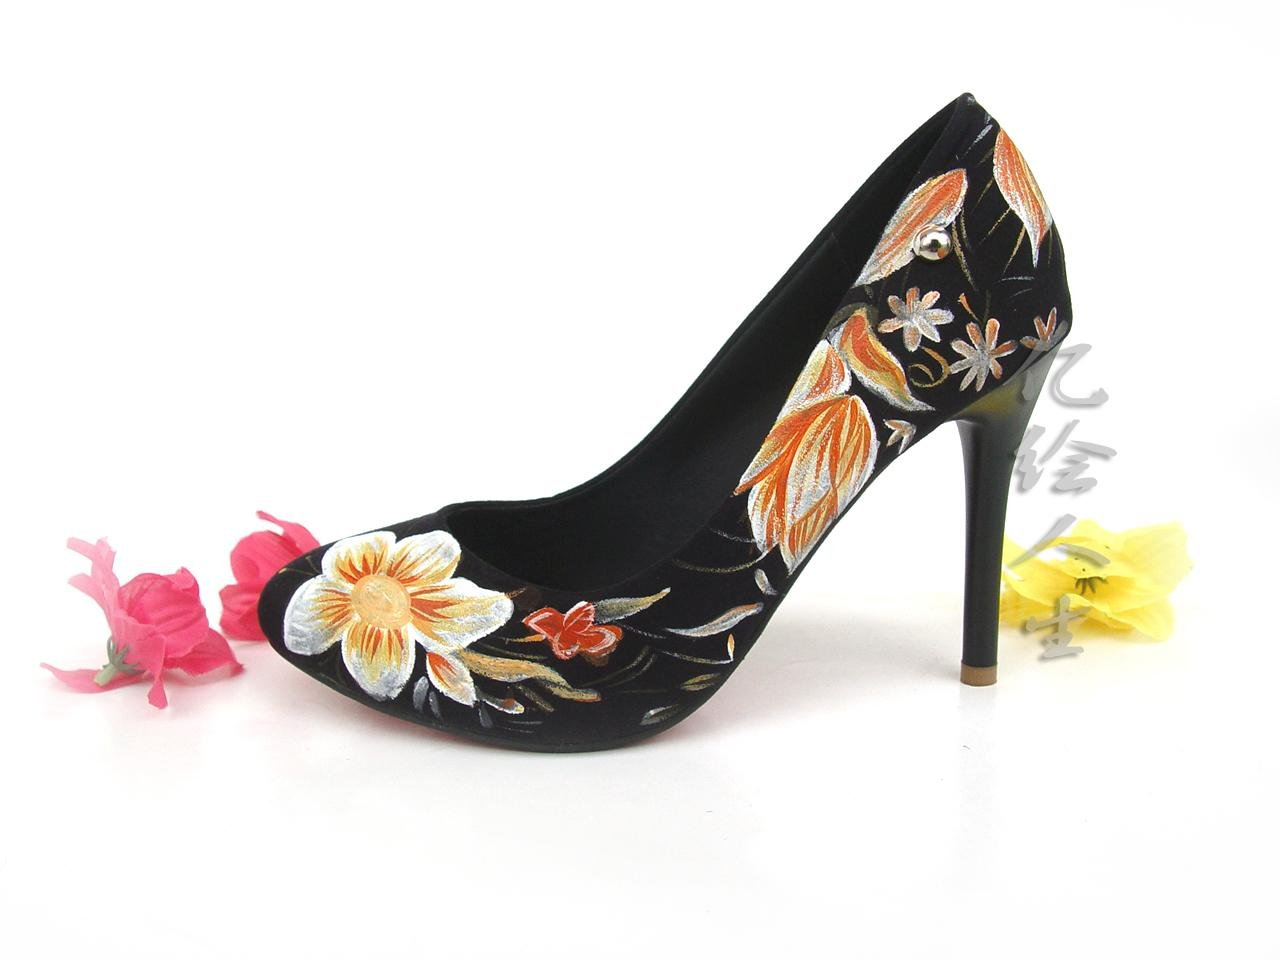 High Heel Shoes Evening Dress Shoes Fashion Shoes With Yellow Flowers Original Style Of Europe